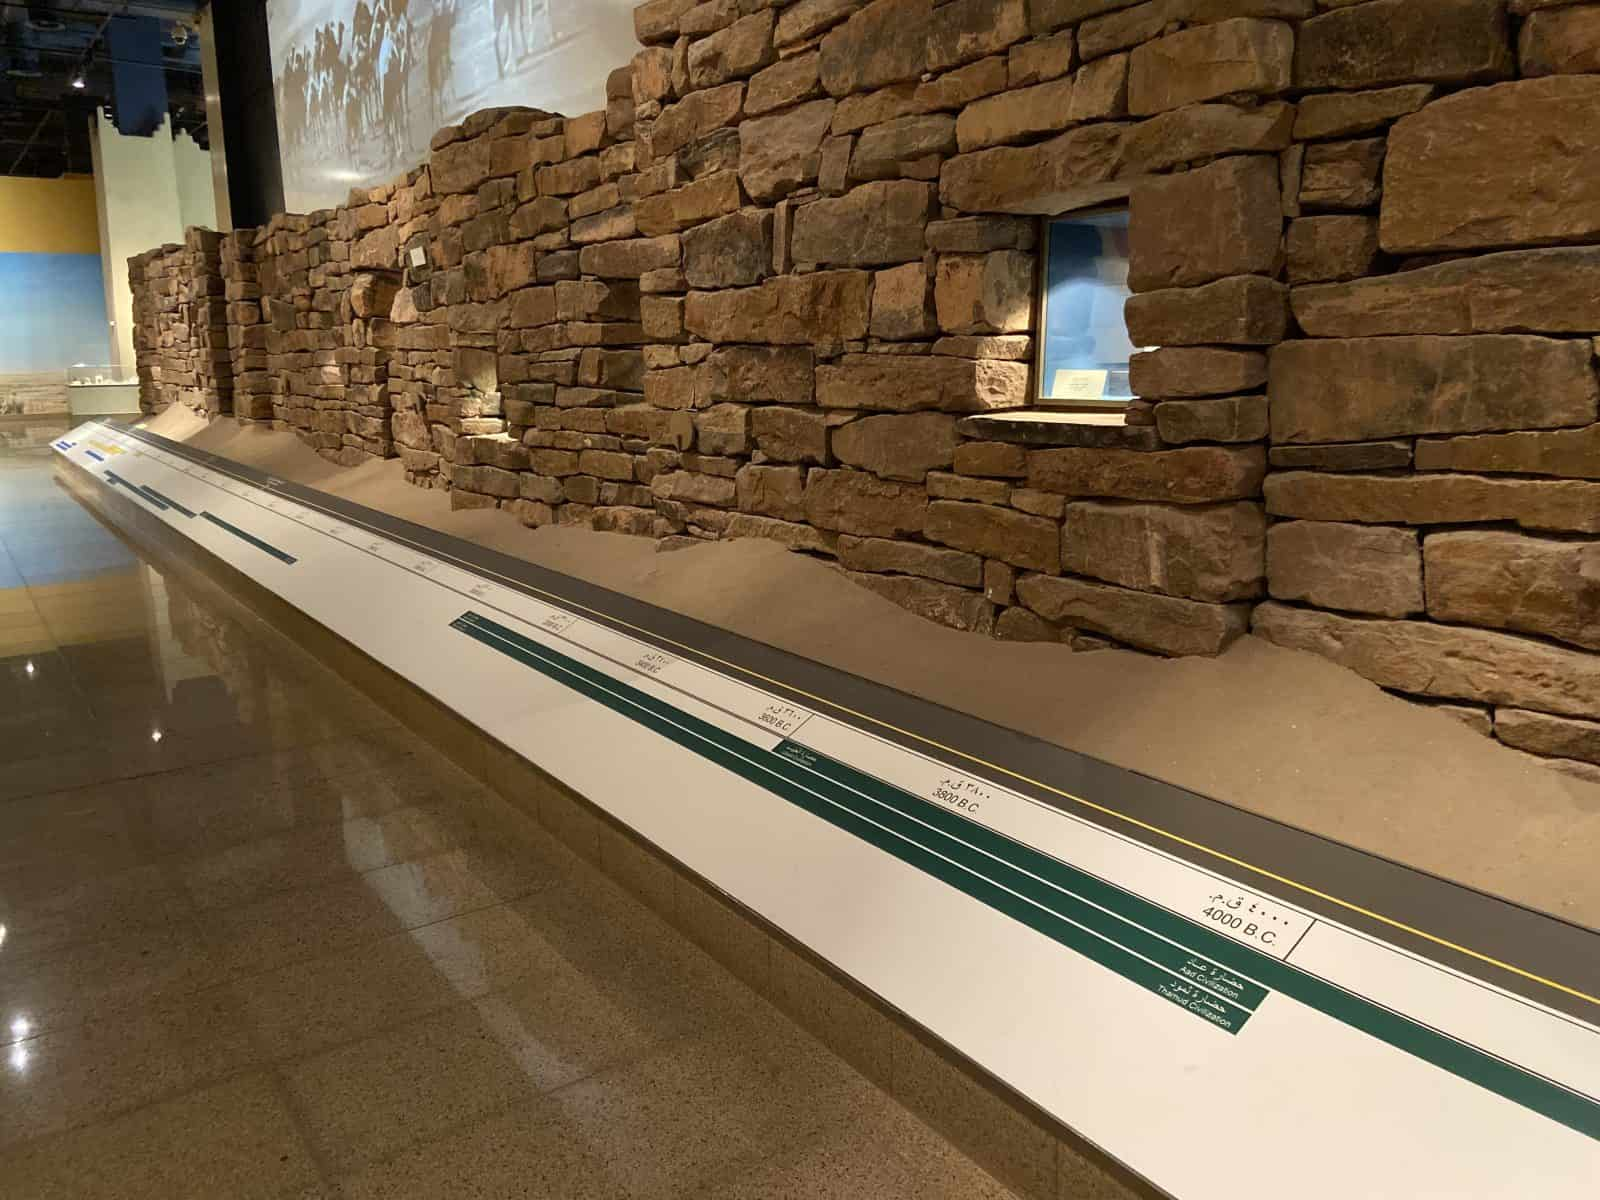 A display showing the evolution of Saudi Arabia societies in the National Museum.